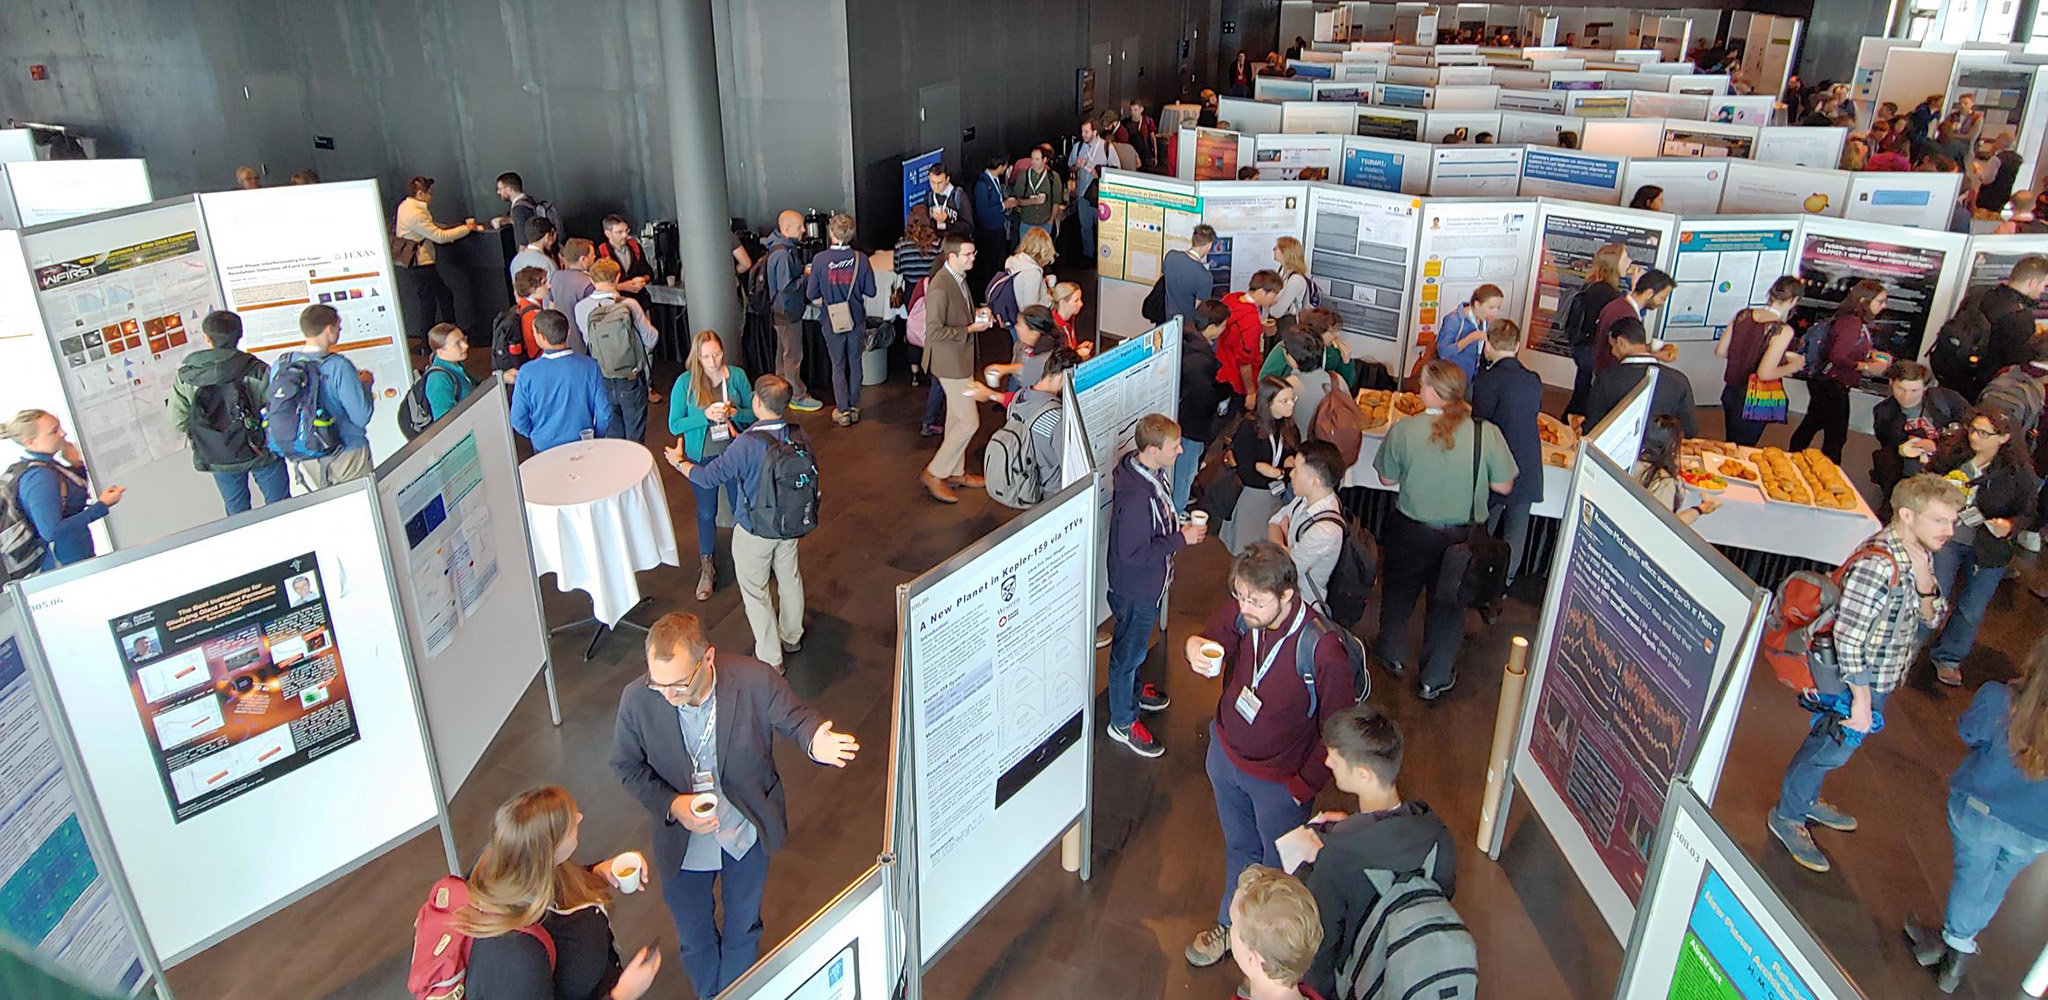 Poster session at the Extreme Solar Systems (ExSS) IV meeting in Reykjavik, Iceland, August 2019